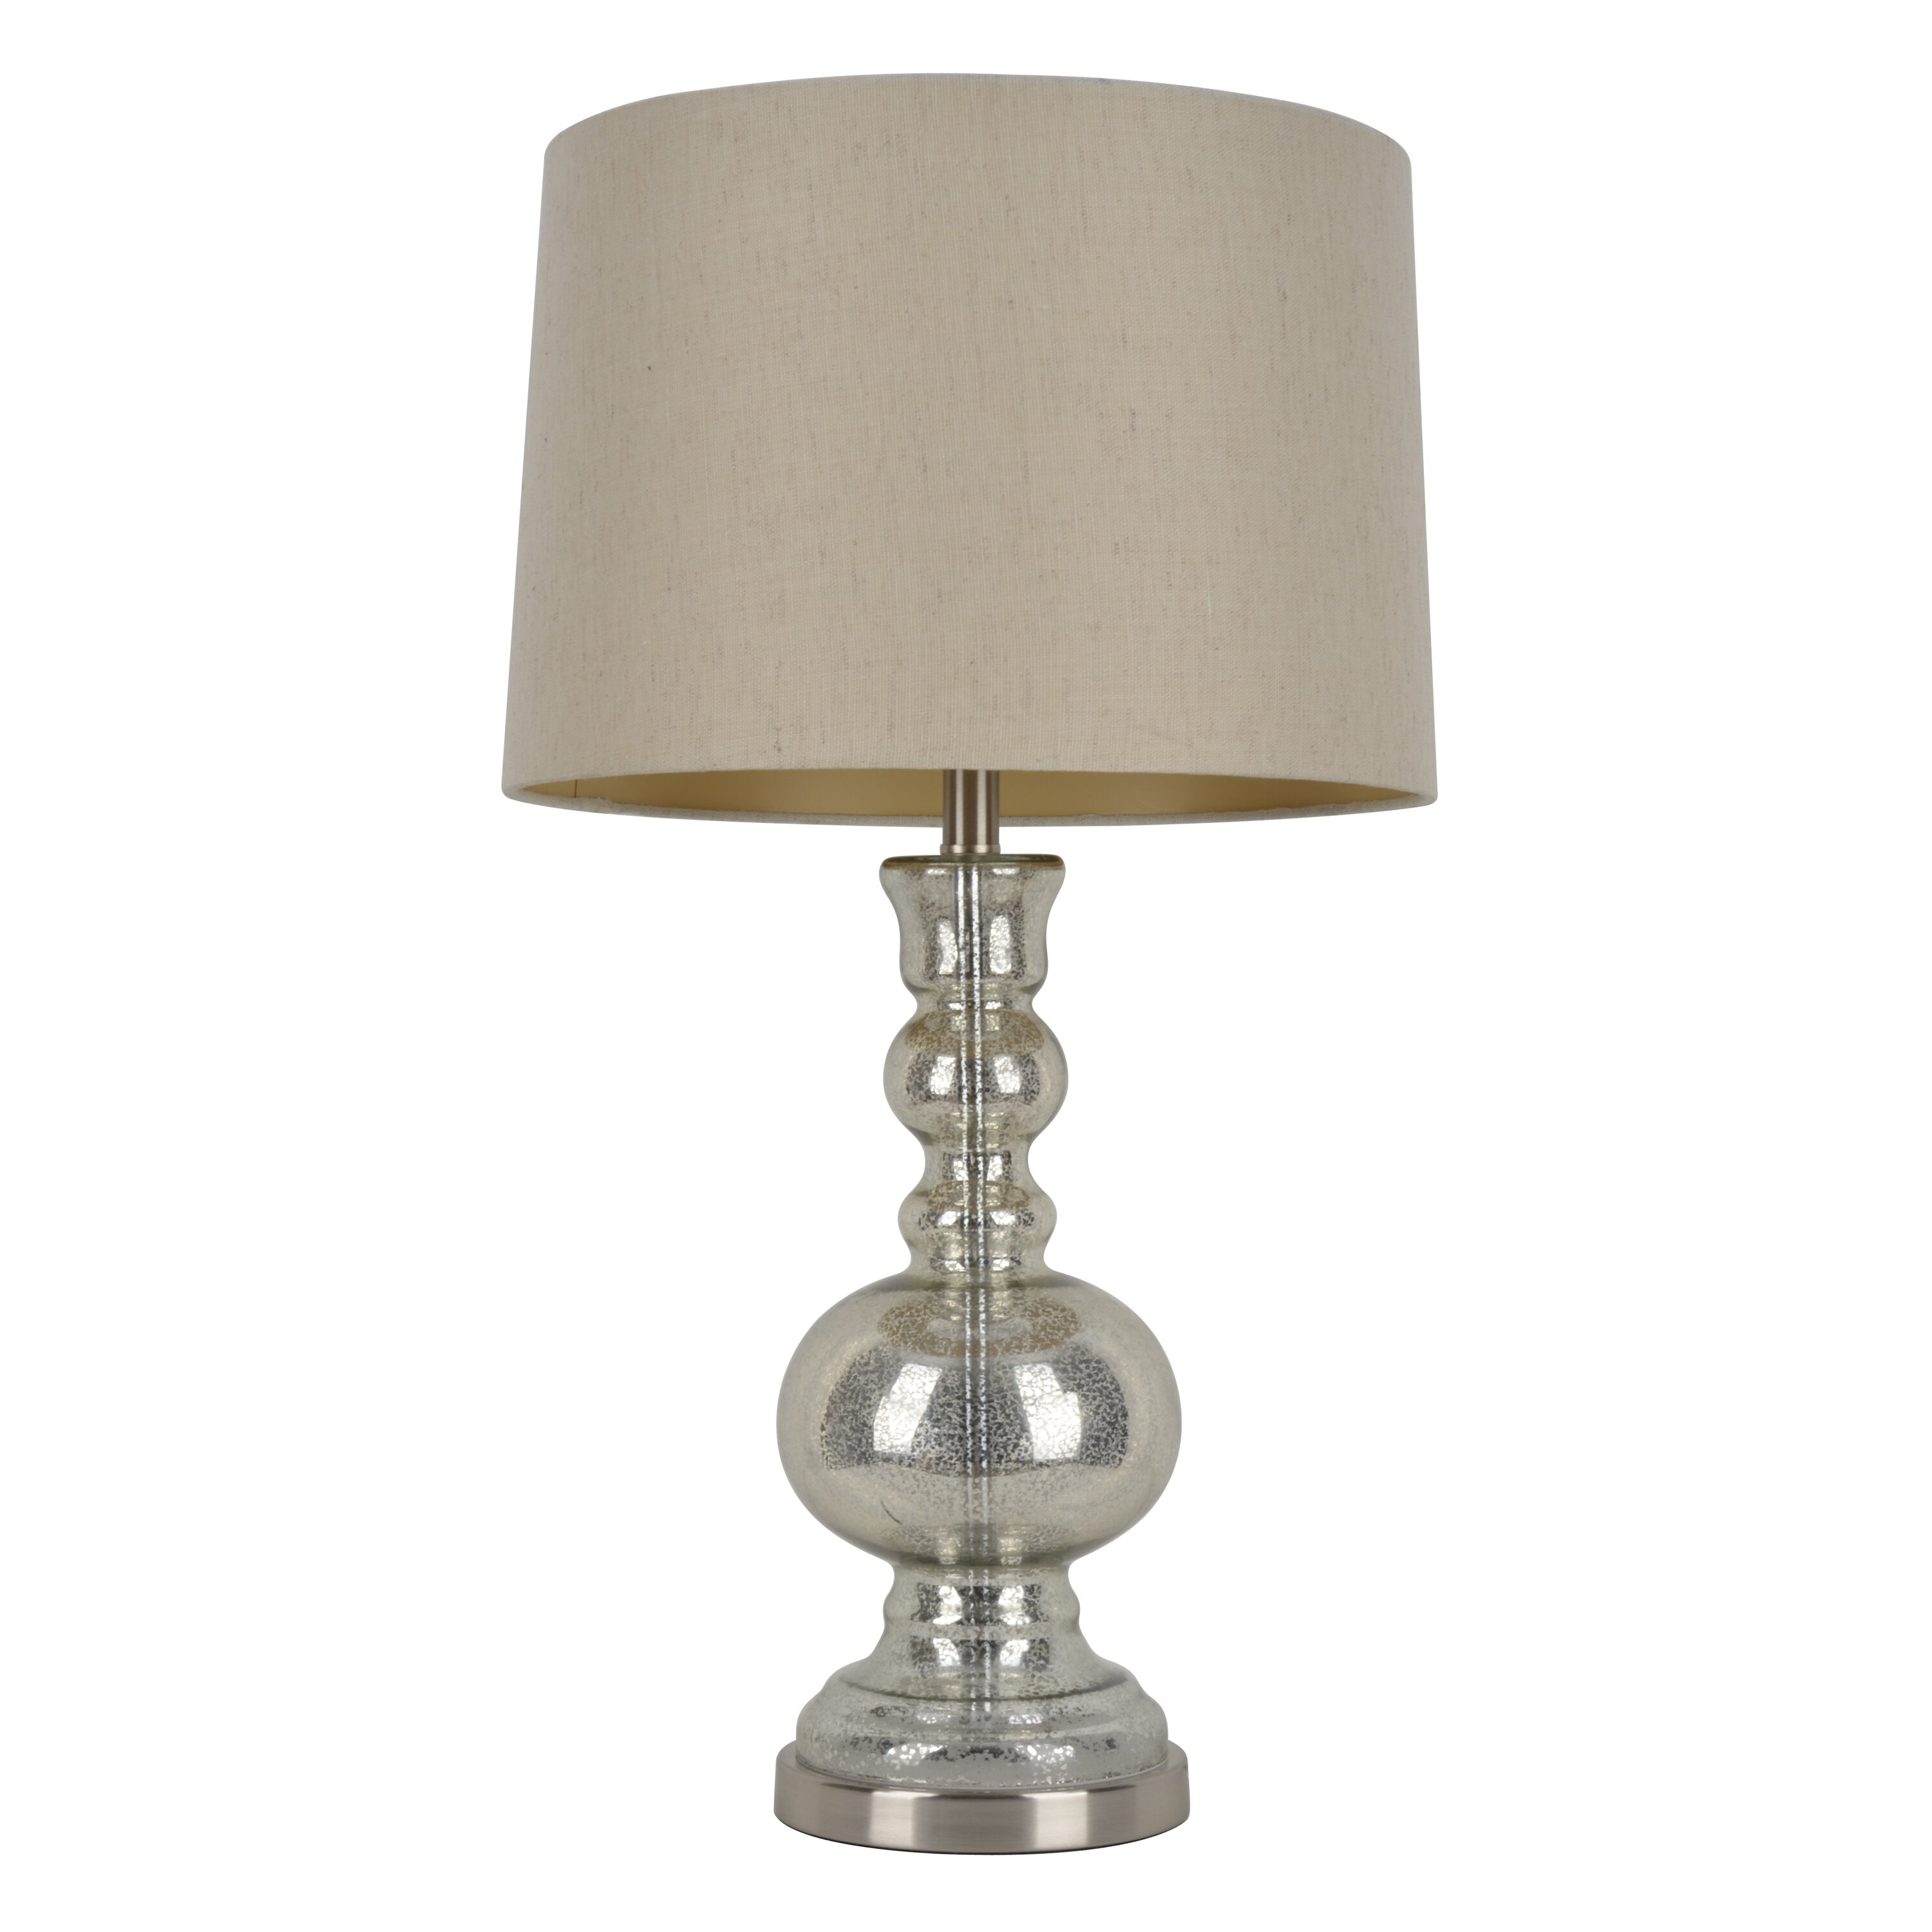 Decor Therapy 295quot Table Lamp amp Reviews Wayfair : 295 H Table Lamp with Drum Shade TL7897 from www.wayfair.com size 3000 x 3000 jpeg 517kB